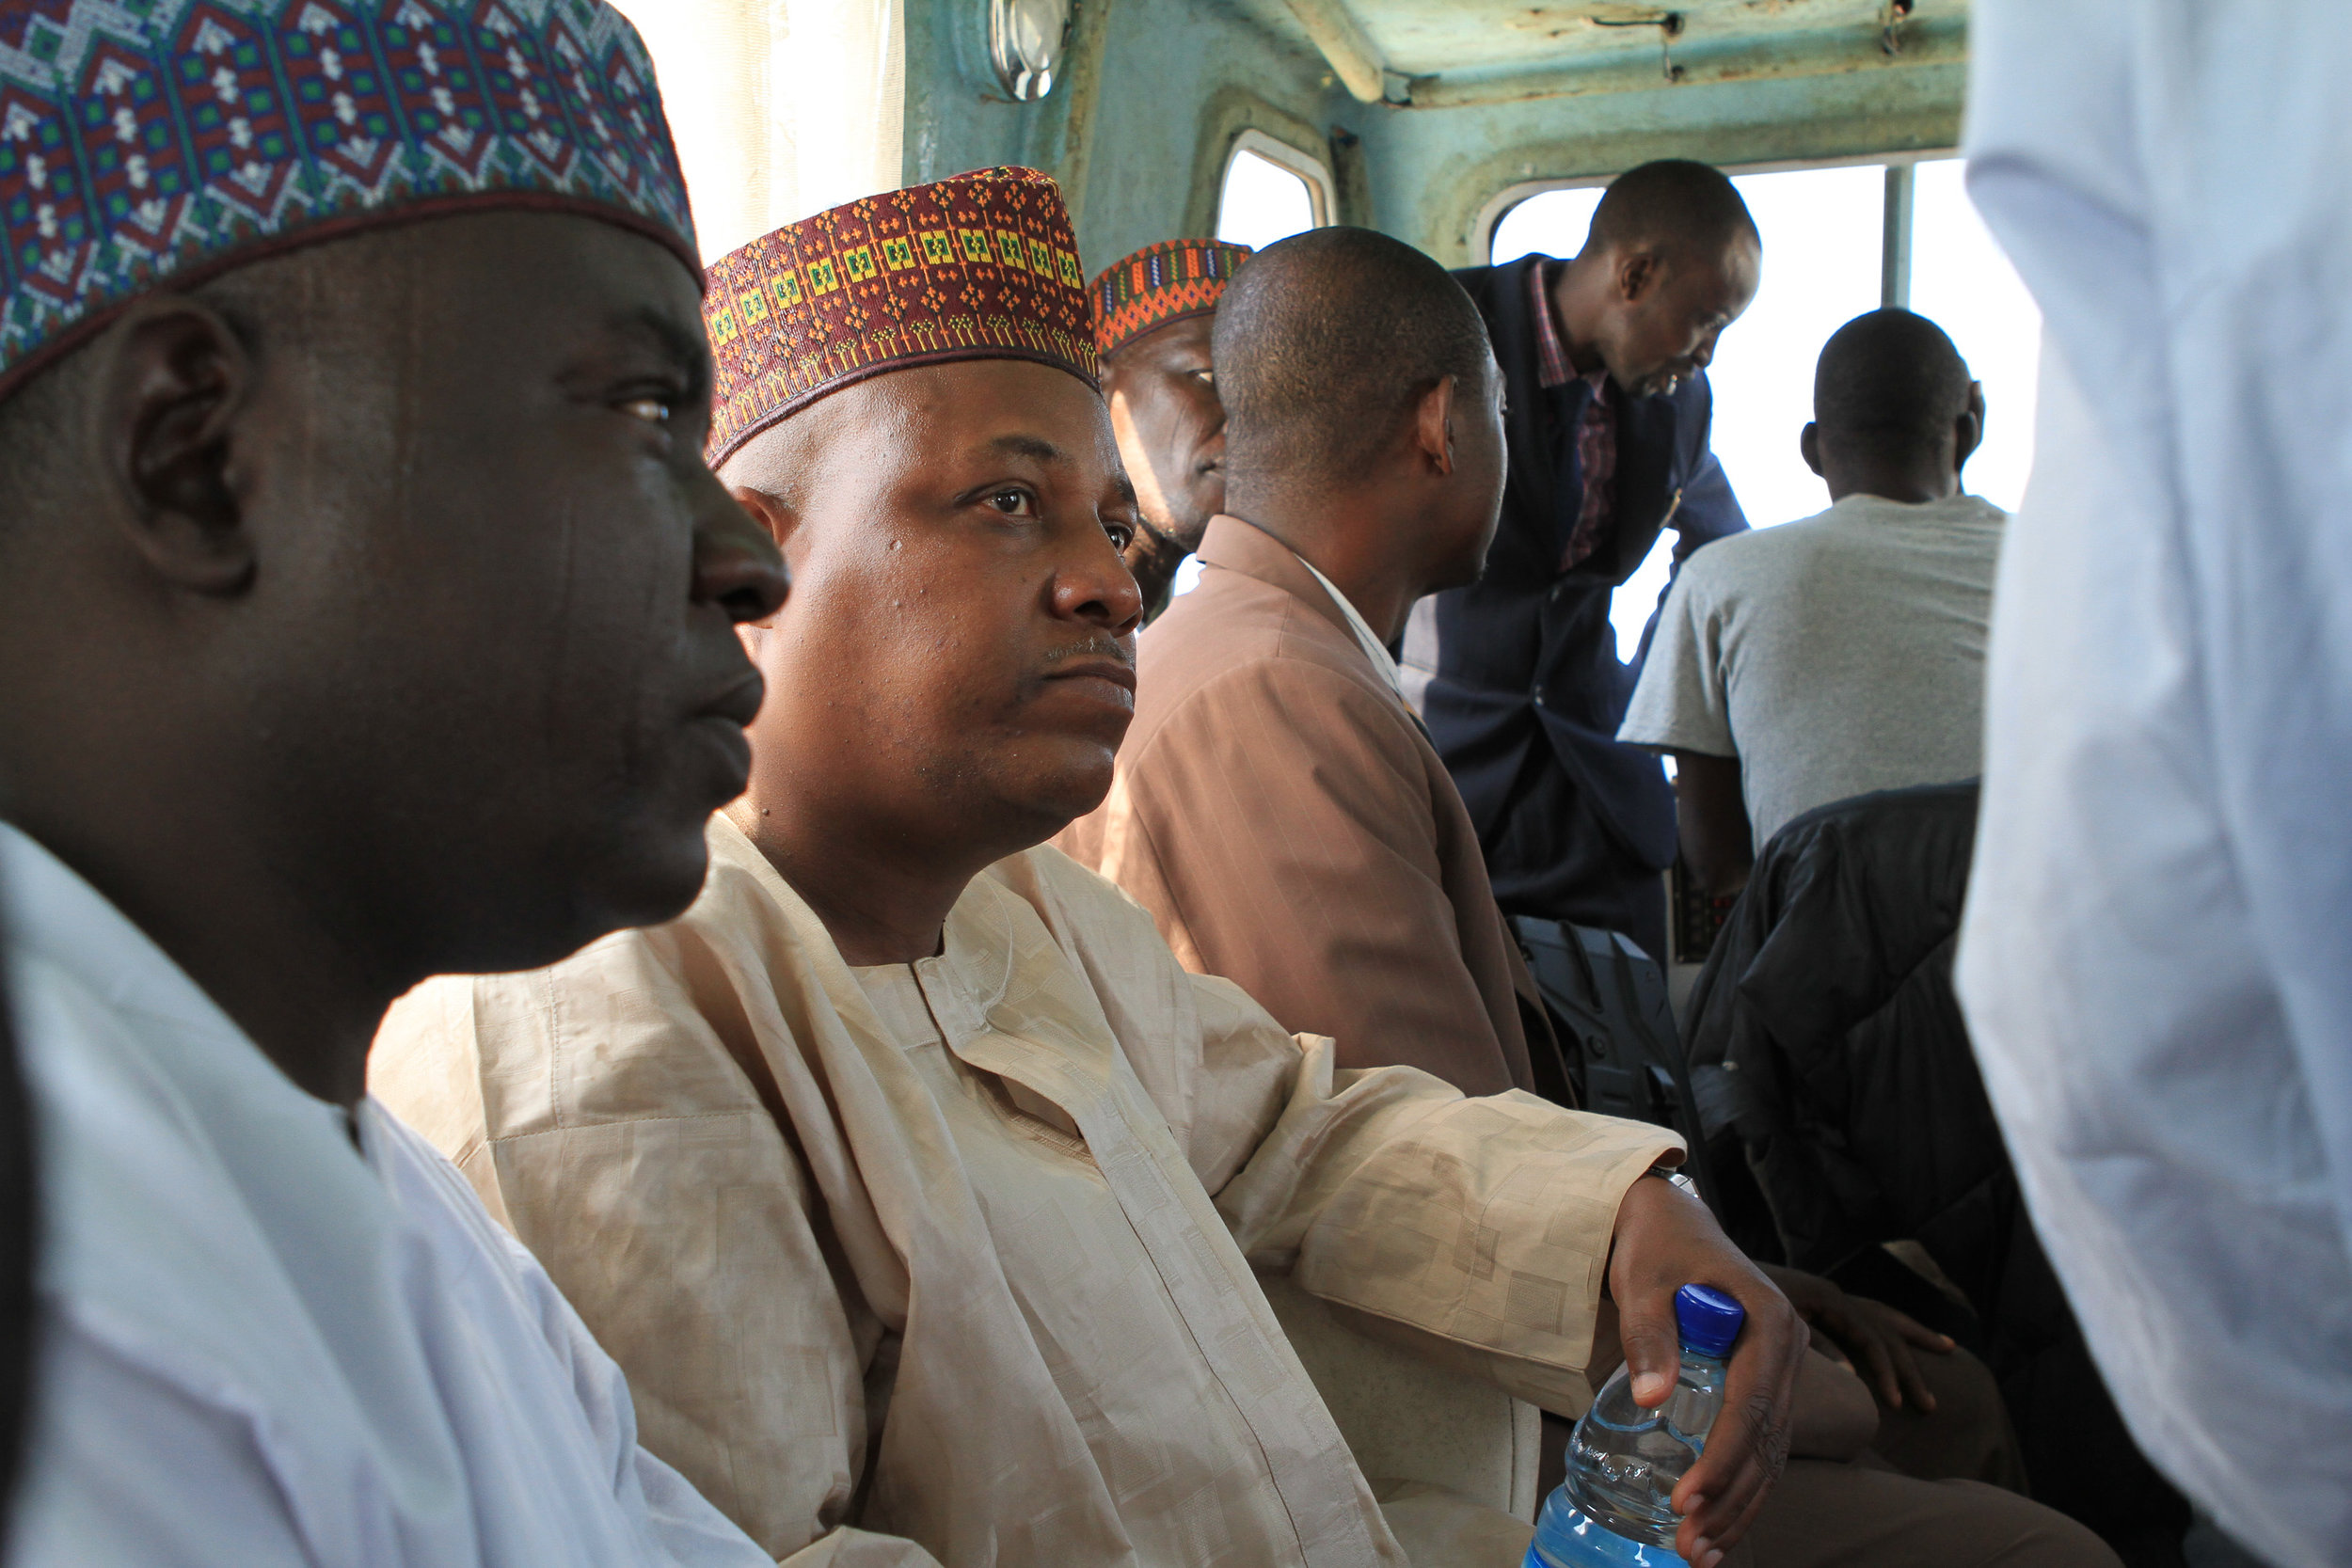 The man in brown was the health minister at the time. Then, he became the Governor of Borno State. He was a really nice man.